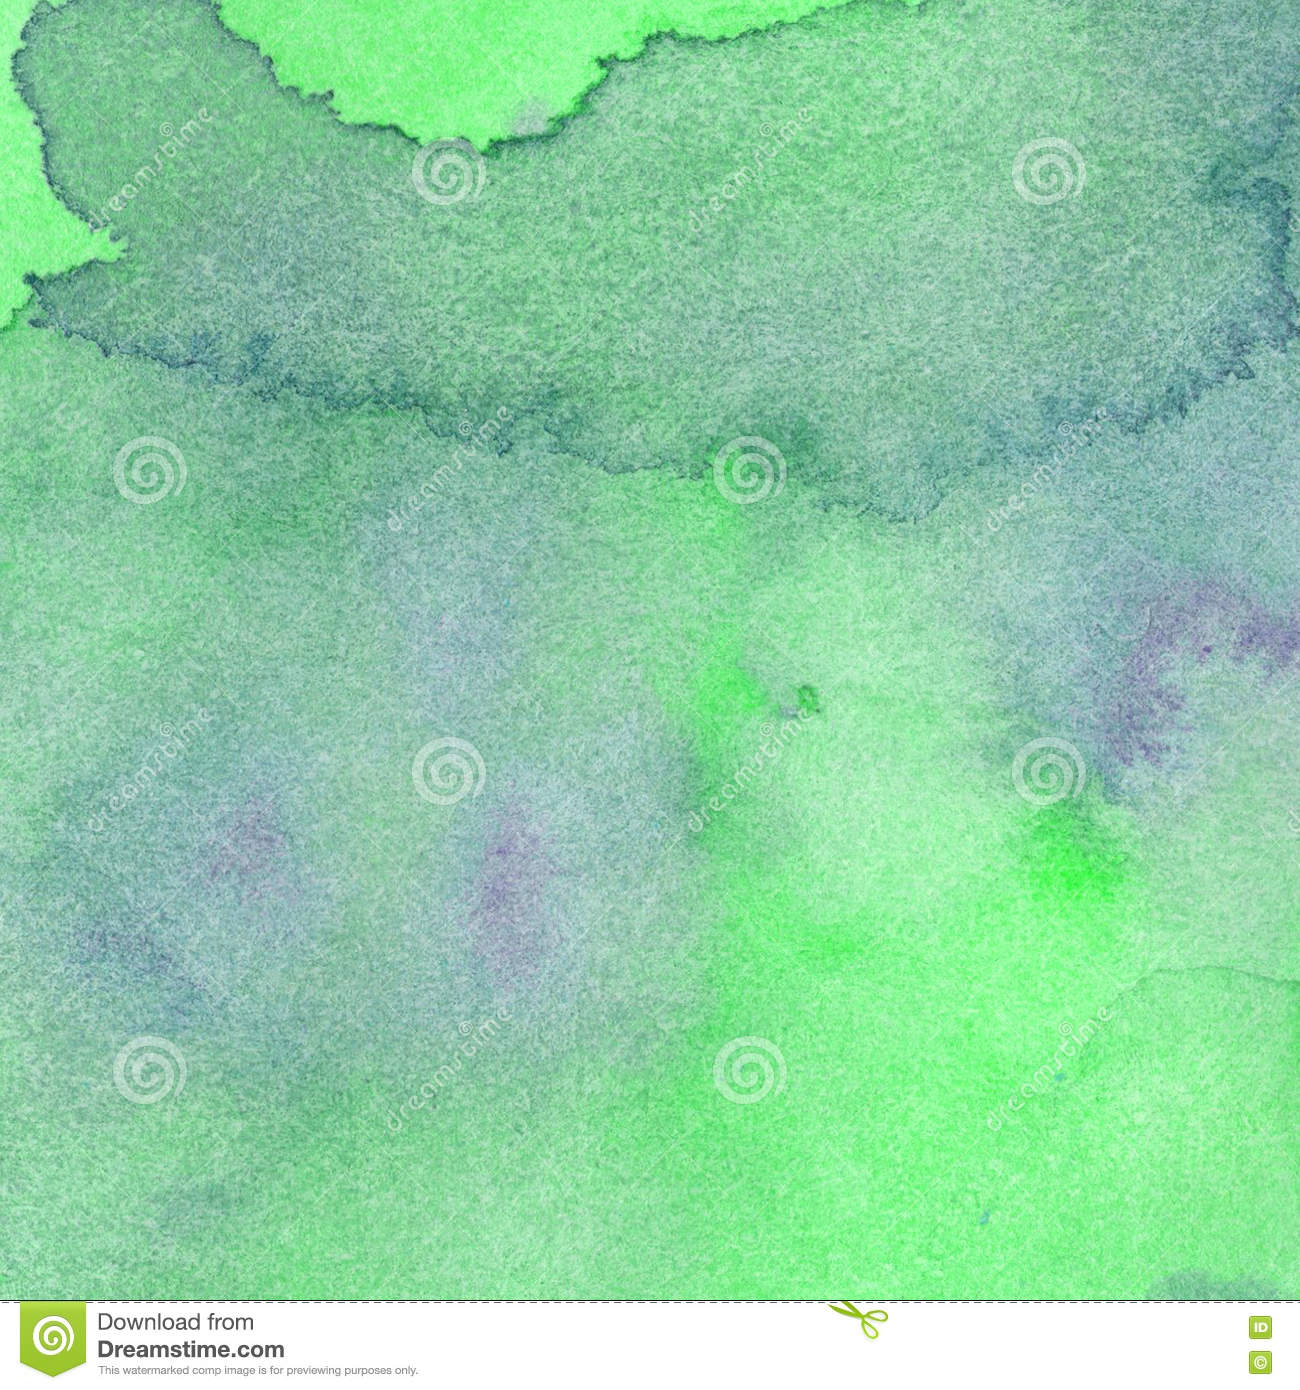 Watercolor texture transparent marble emerald green, mint blue color. watercolor abstract background.